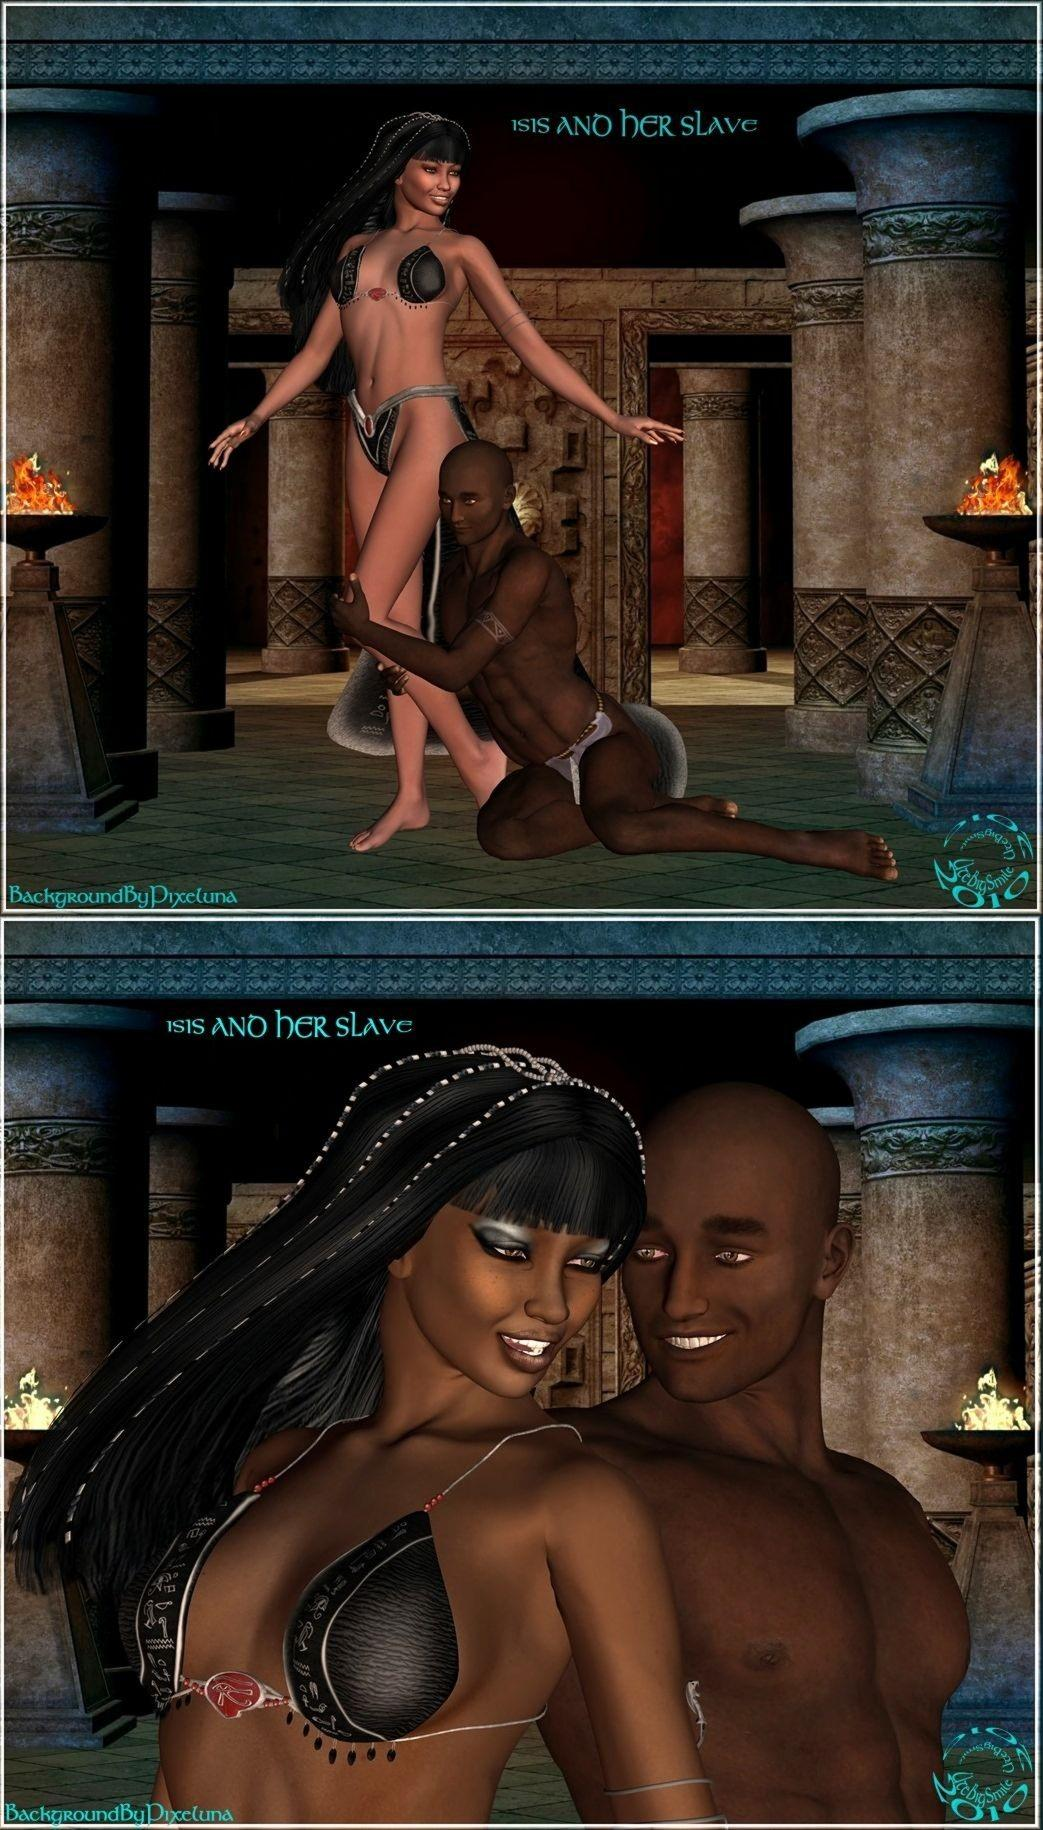 Isis and her Slave   (for missblue & angelafair)